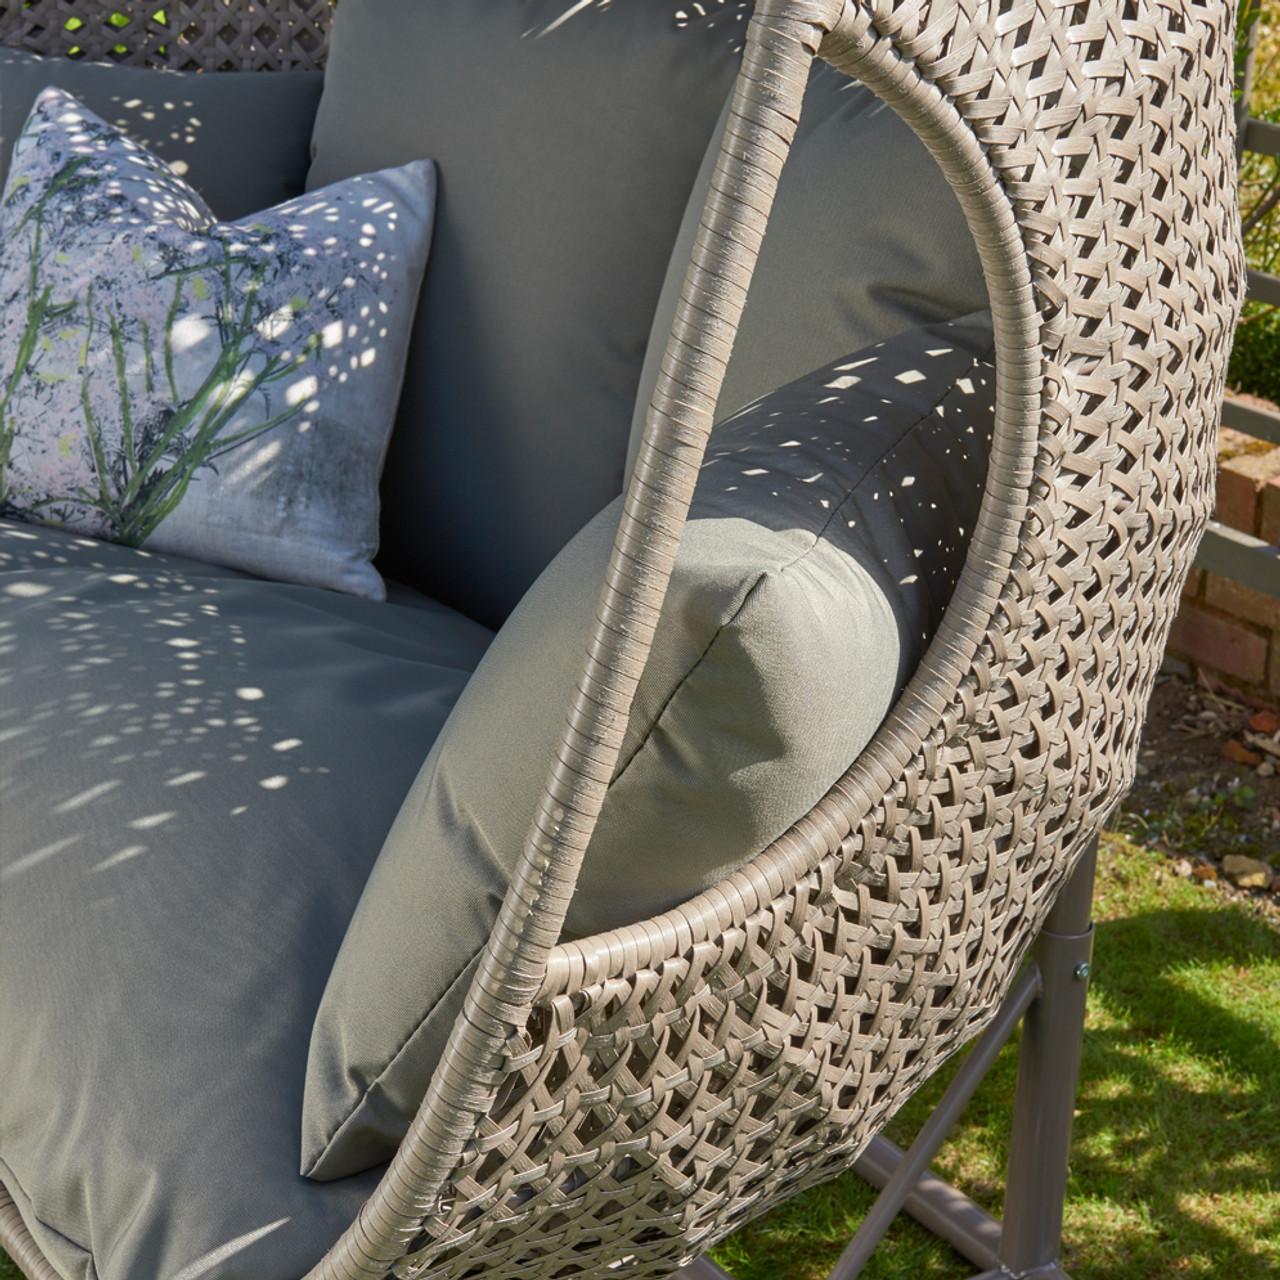 Goldcoast Double Hanging Chair Swing Grey Norfolk Leisure Qubox